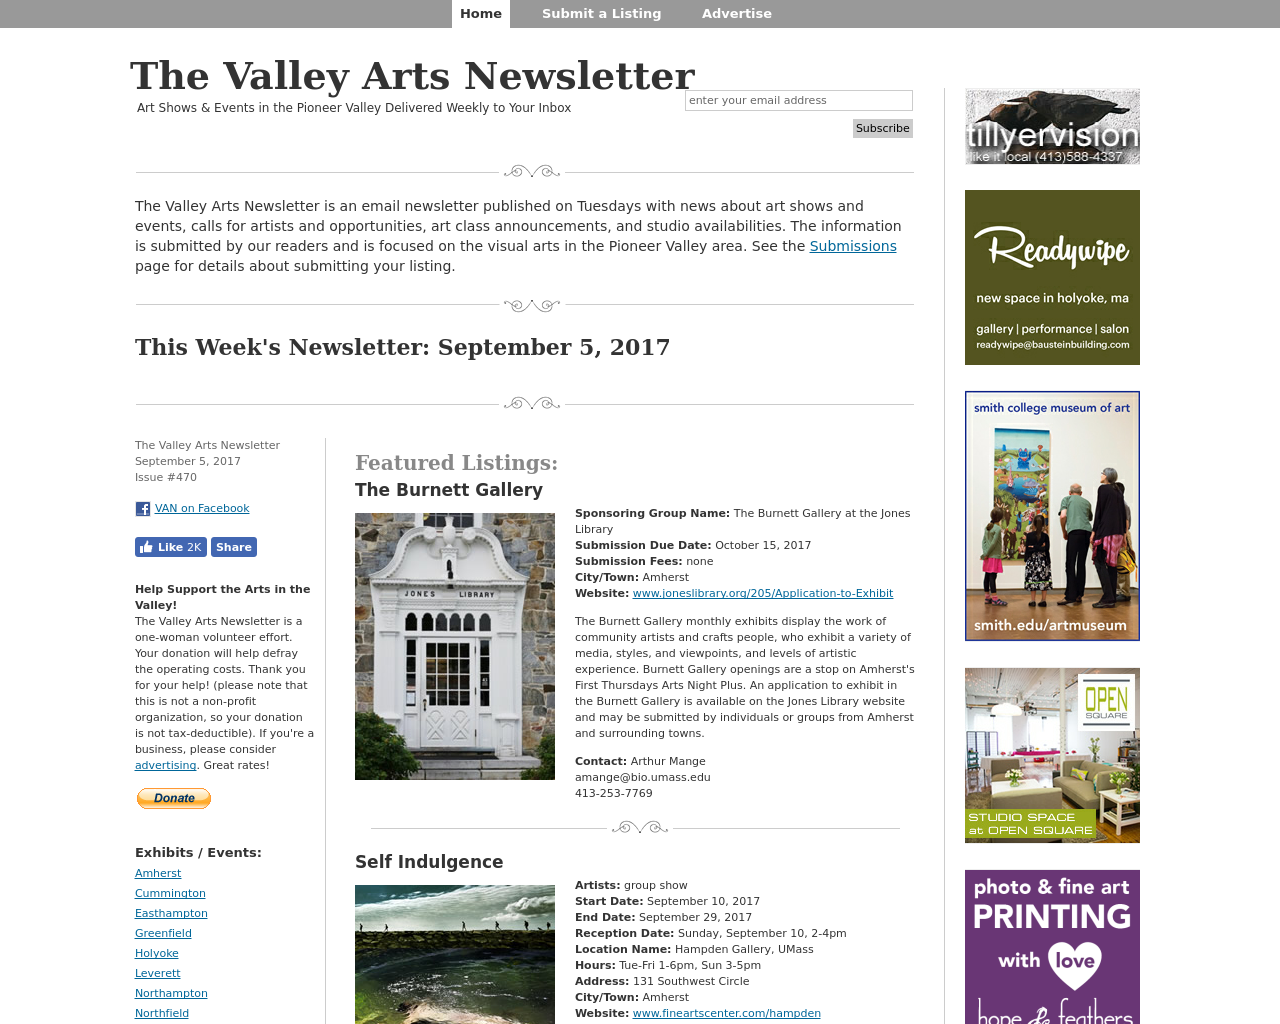 The-Valley-Arts-Newsletter-Advertising-Reviews-Pricing